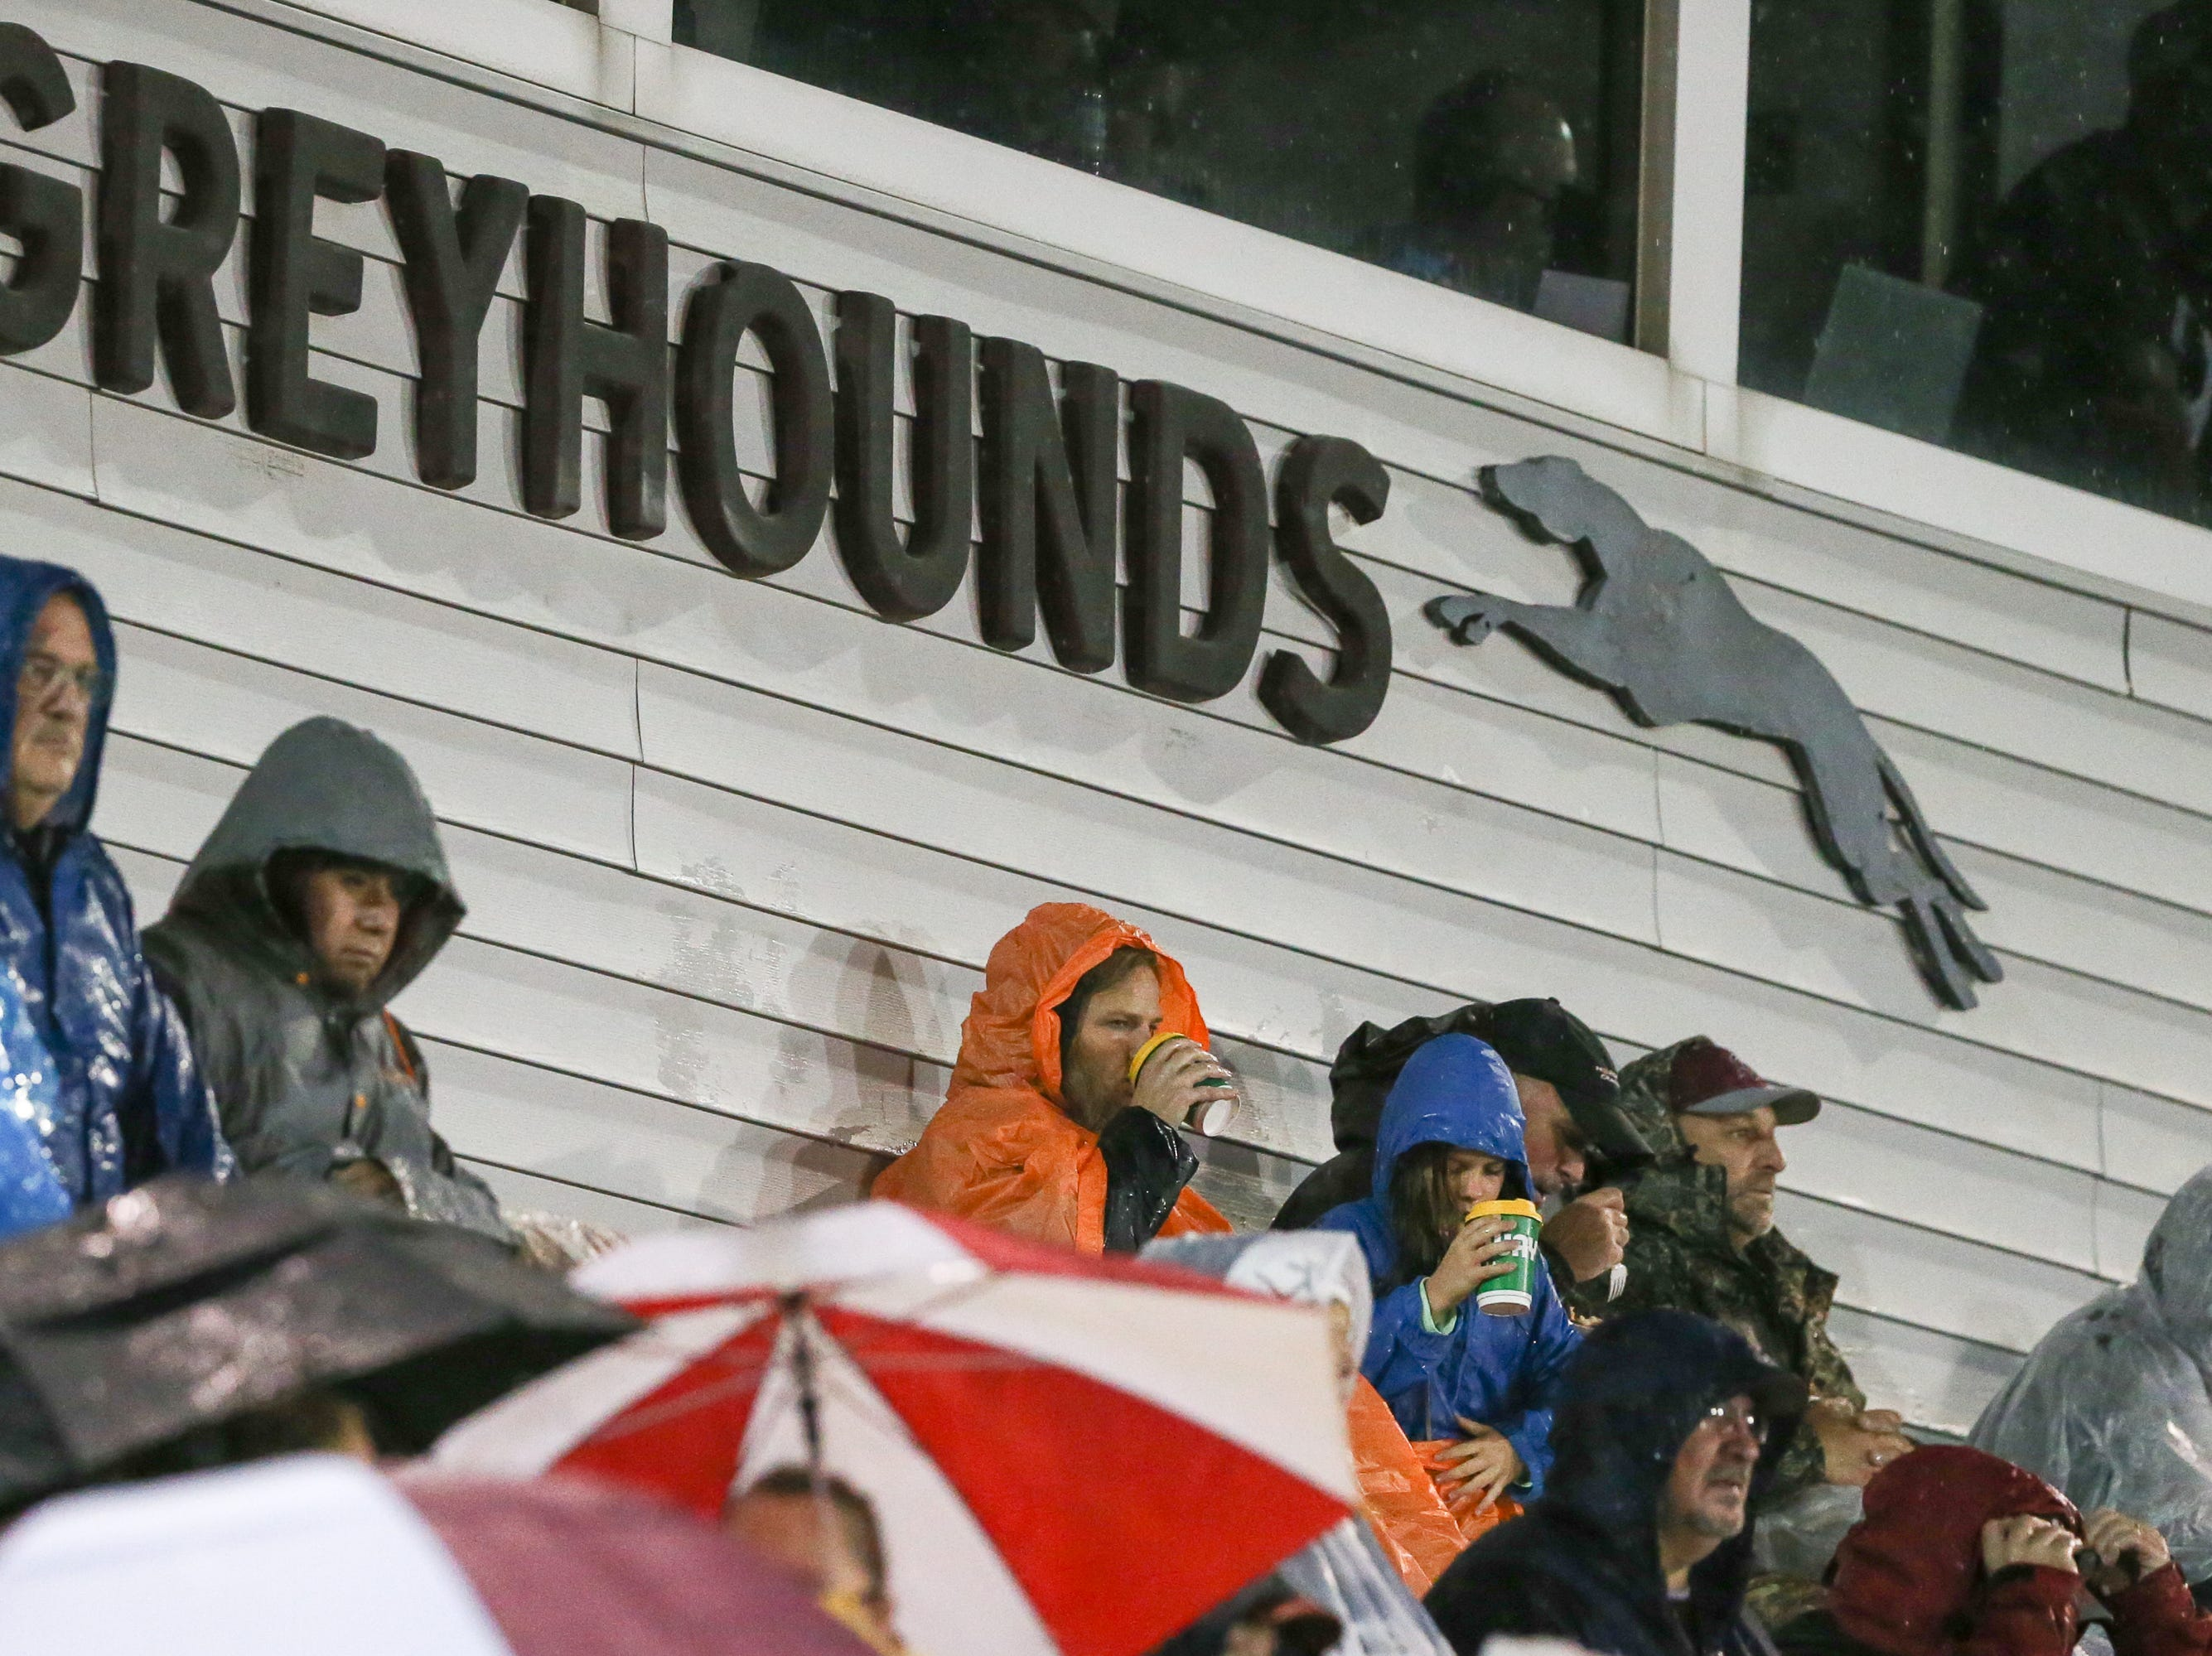 Dedicated fans brave the rain. The Shippensburg Greyhounds beat Northeastern 6-0 in a playoff game on Friday, Nov. 2, 2018.